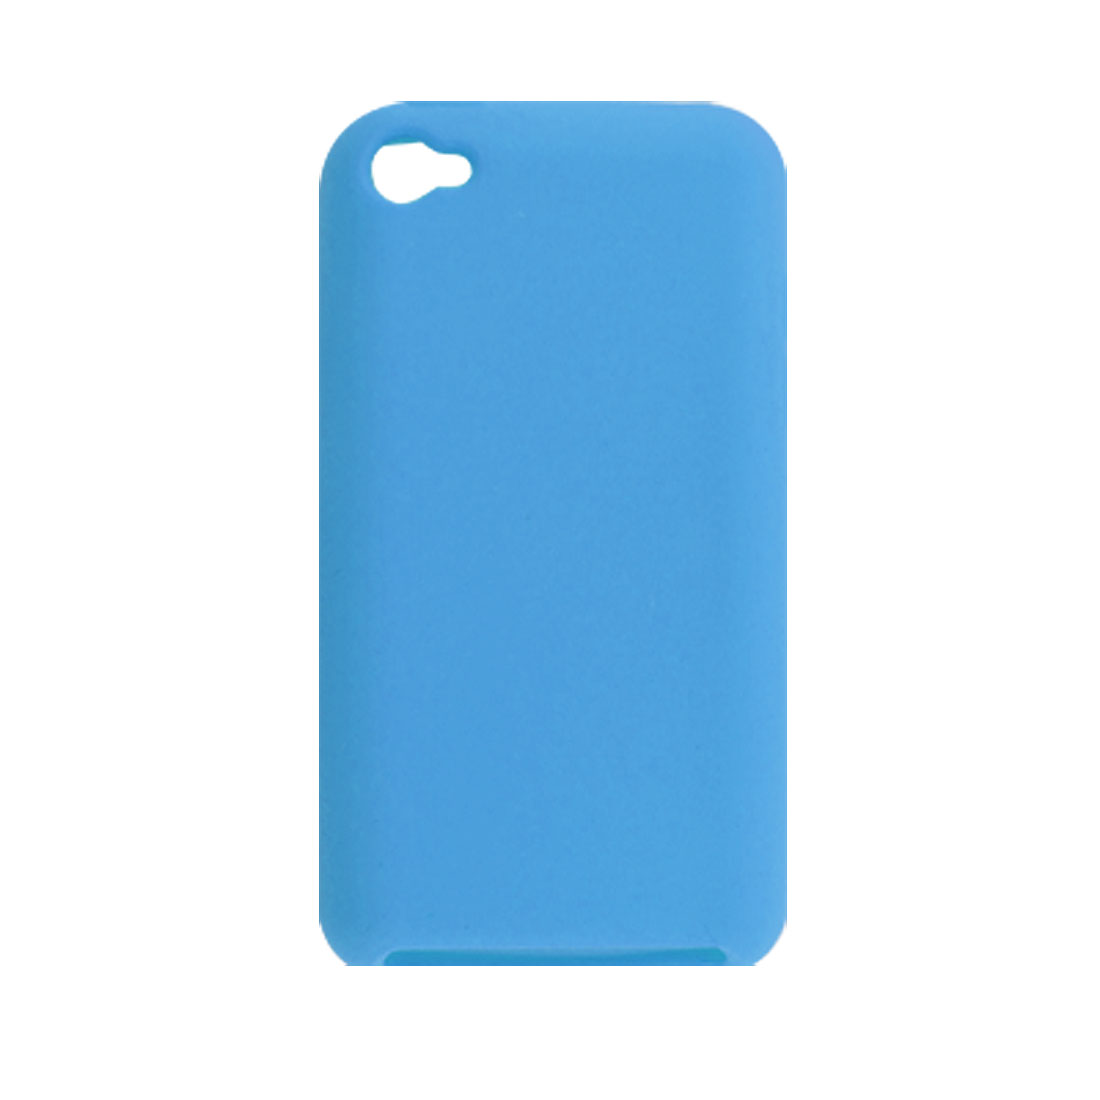 Sky Blue Silicone Skin Case Protector for iPod Touch 4G